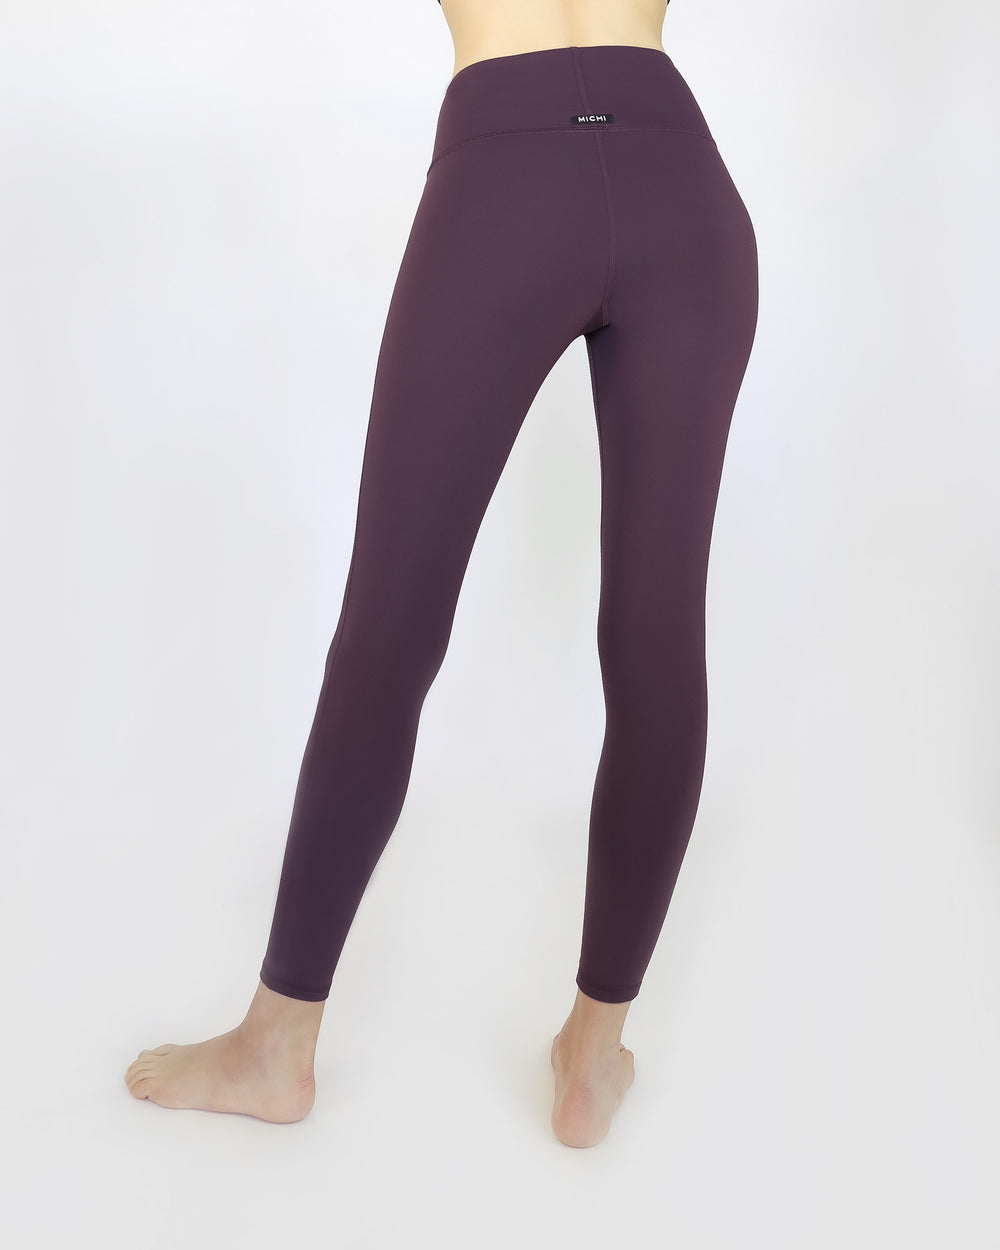 Instinct Legging - Plum